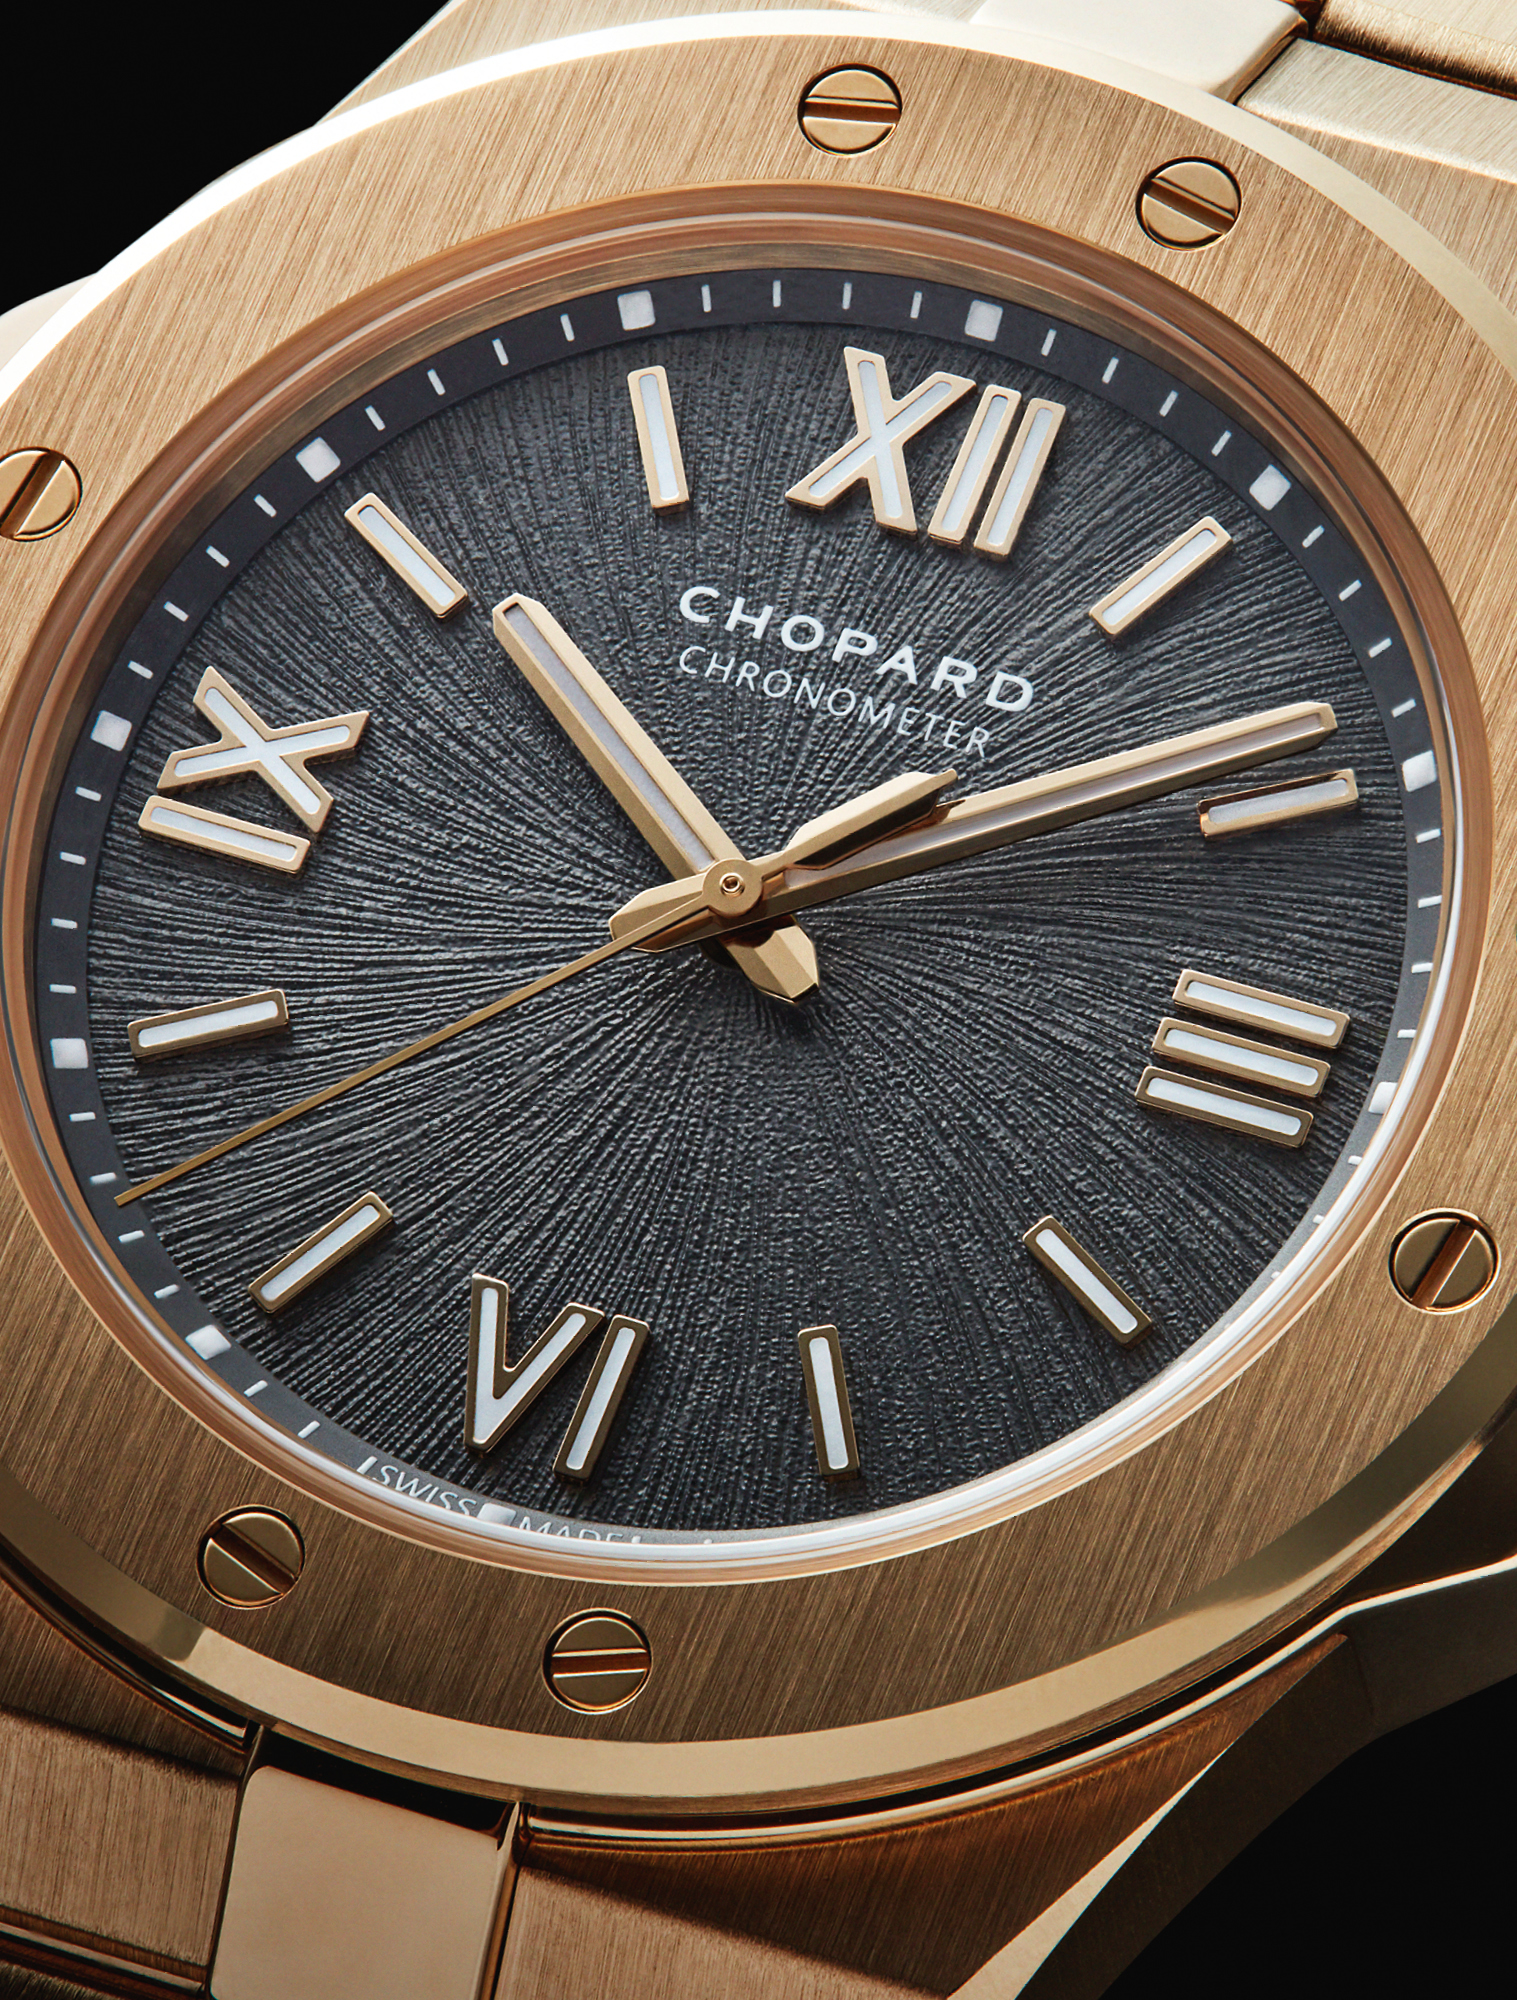 Inspired by the majesty of the Alps and the beauty of the white-tailed eagle, Chopard's 36mm 18ct rose gold watch from the new Alpine Eagle collection features a textured bernina grey dial evoking an eagle's iris. £POA, CHOPARD